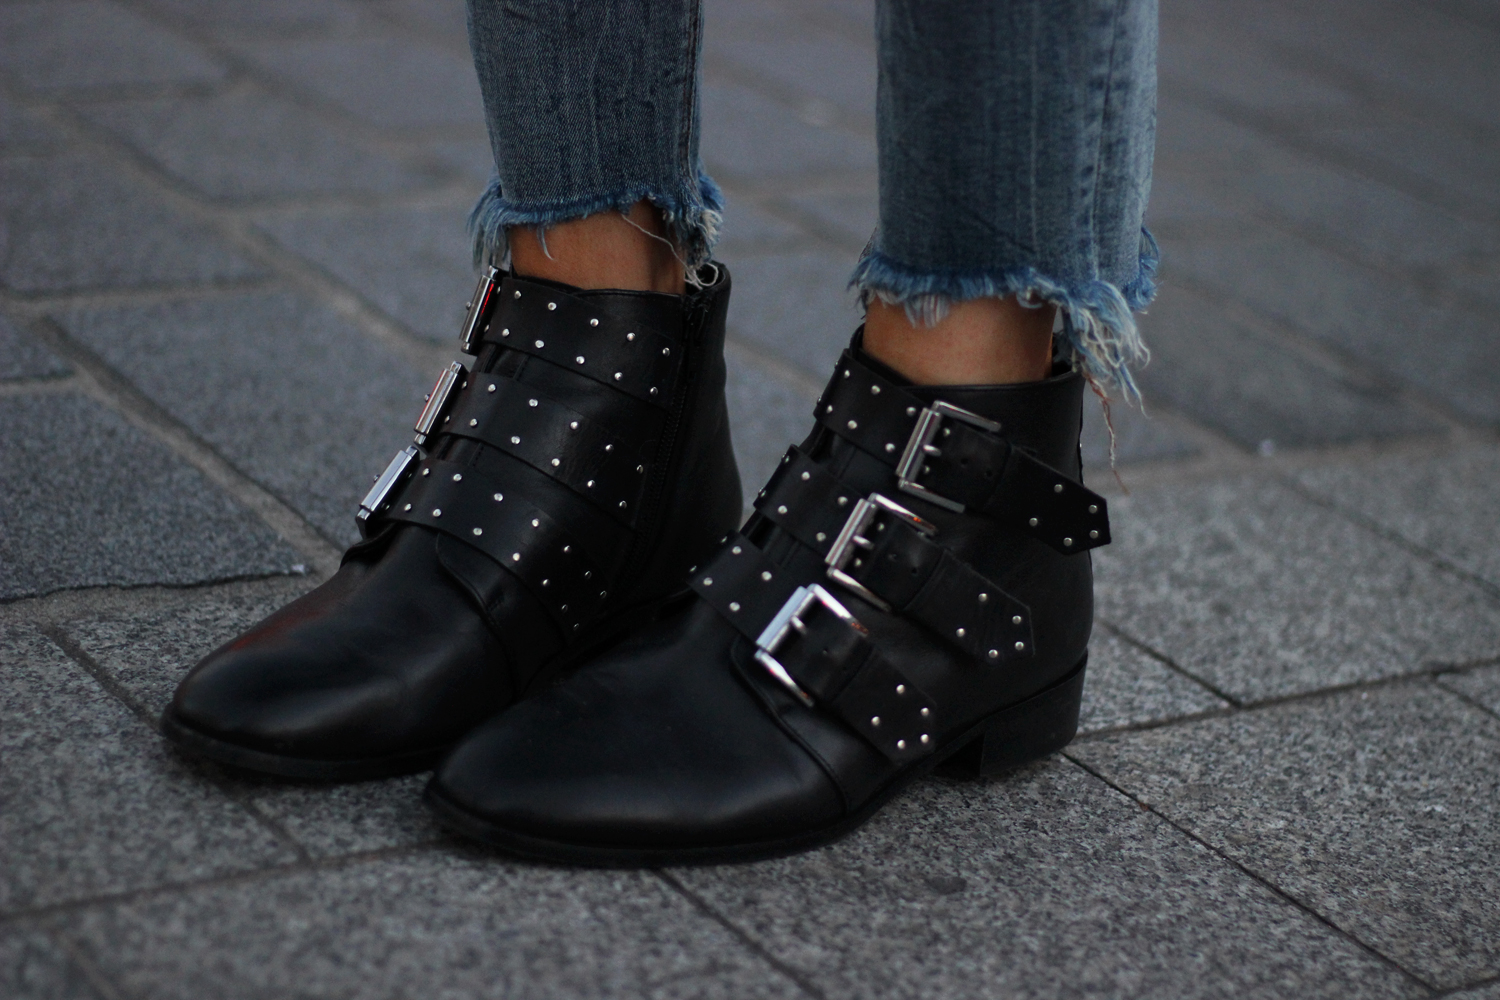 Bottines cloutees Ashleigh leather studded lace up boots